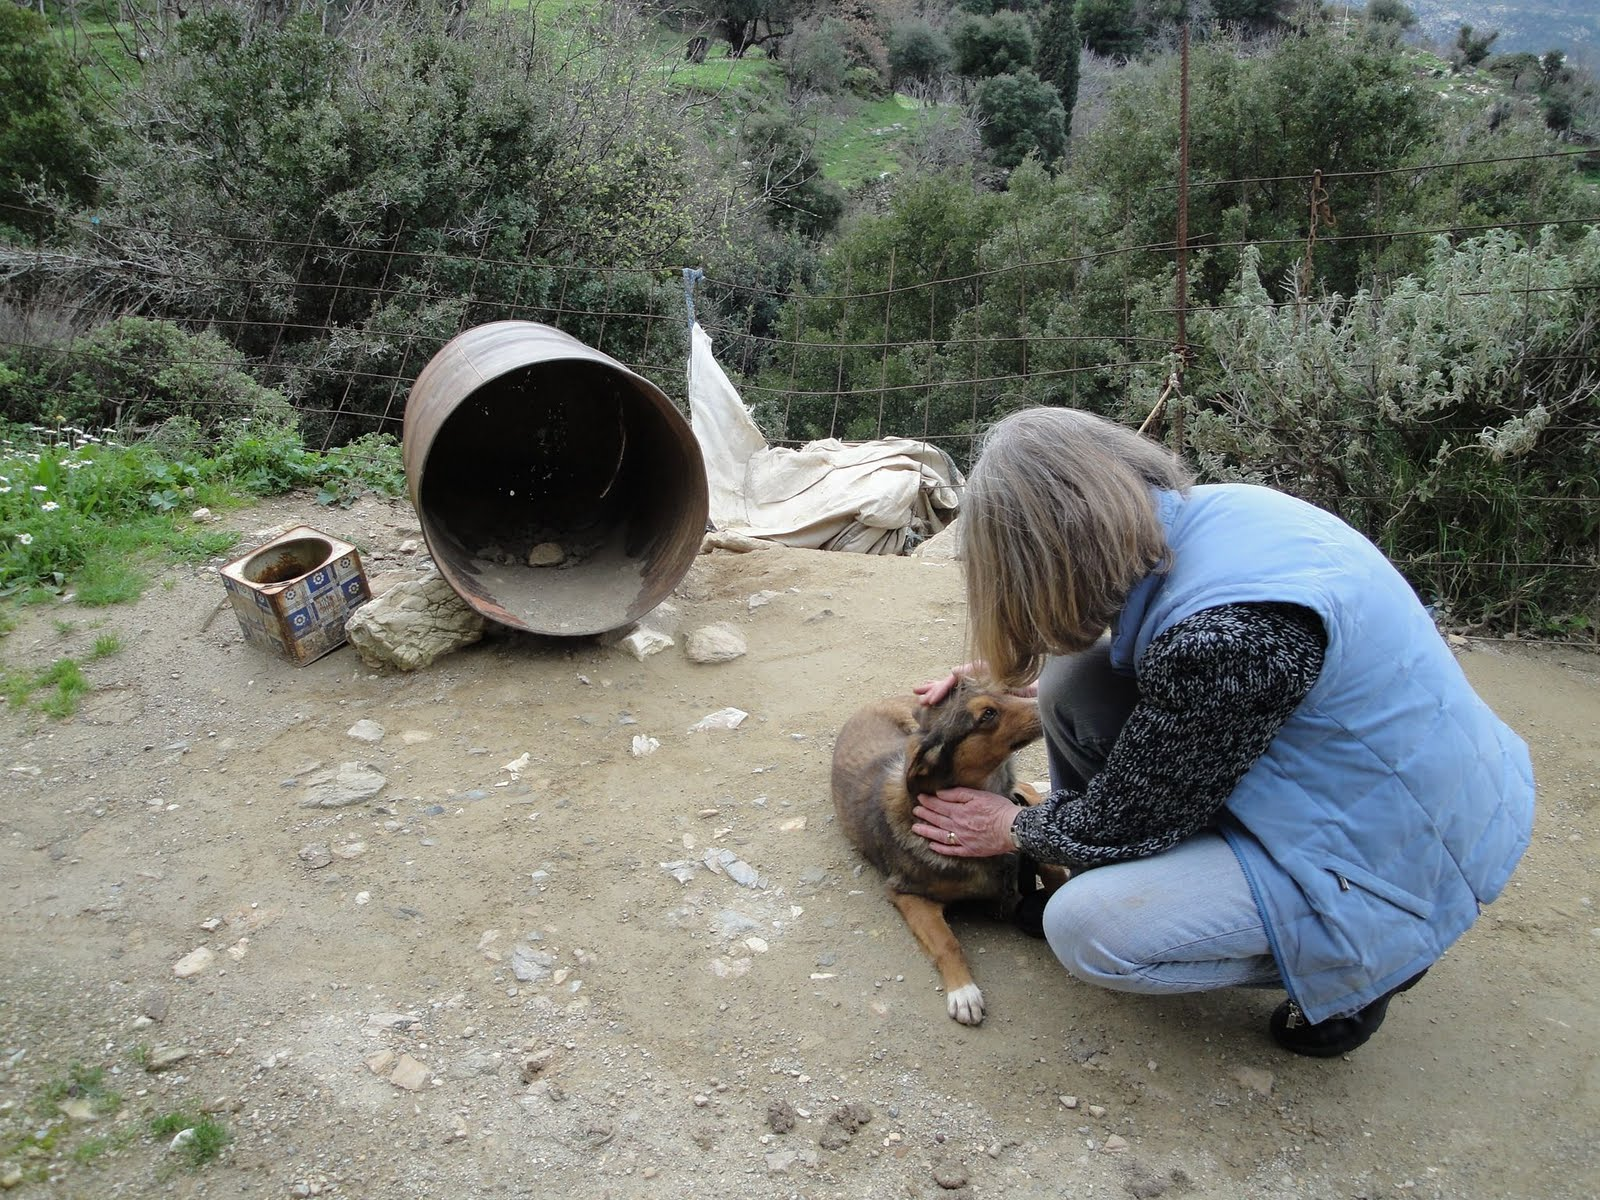 Carol Mc Beth discovered this 'barrel dog' in November 2009. In February 201 its health had deteriorated and in May 2010 the dog had disappeared. In September 2010 another dog was tied to the same barrel.